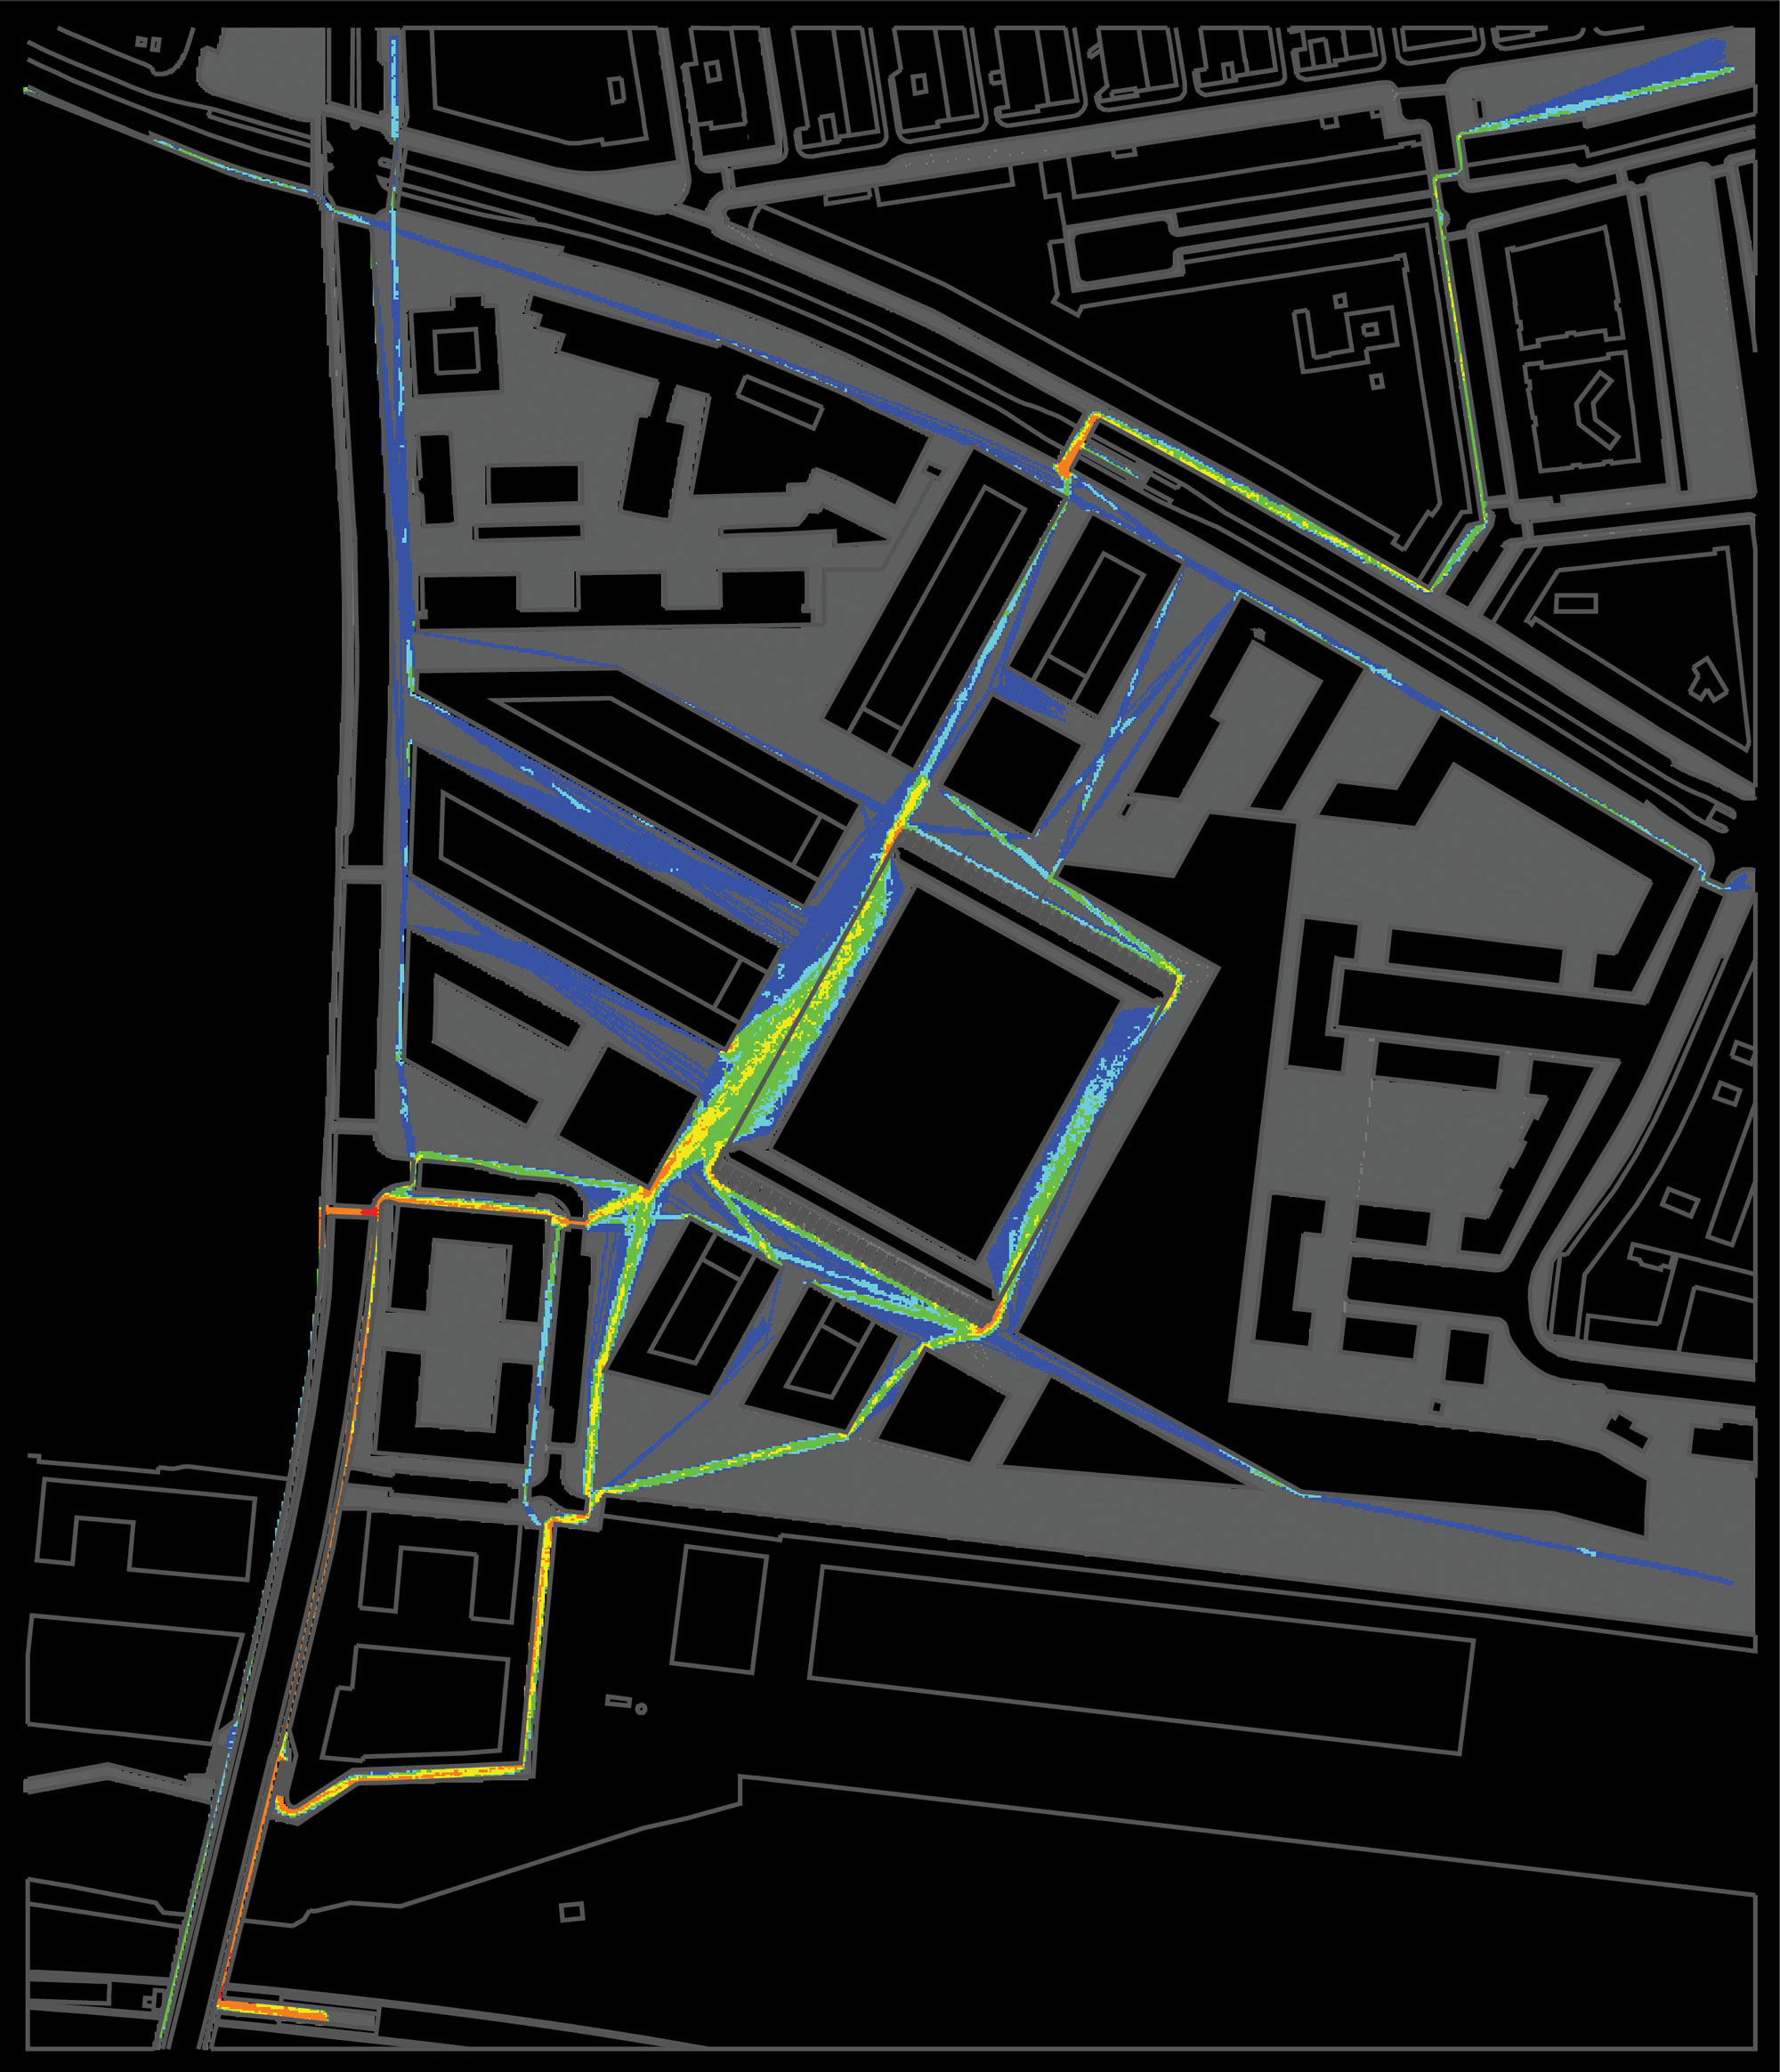 Paketposthalle Munich Transport and Mobility Strategy, Space Utilization